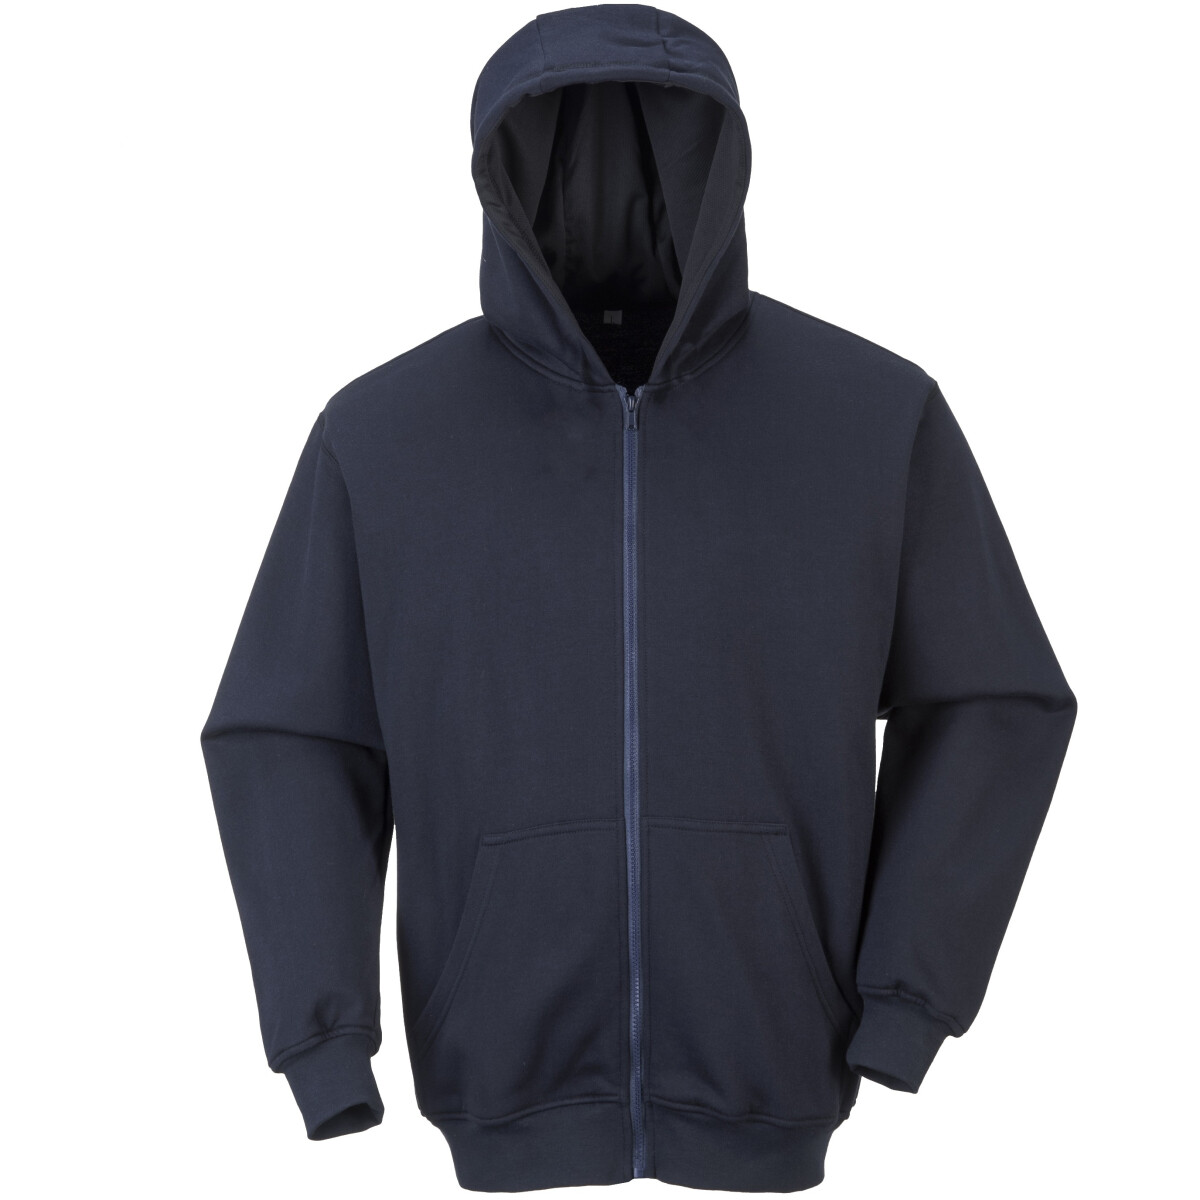 6ce327b02321 Portwest FR81 FR Zip Front Hooded Sweatshirt Flame Resistant from Lawson HIS